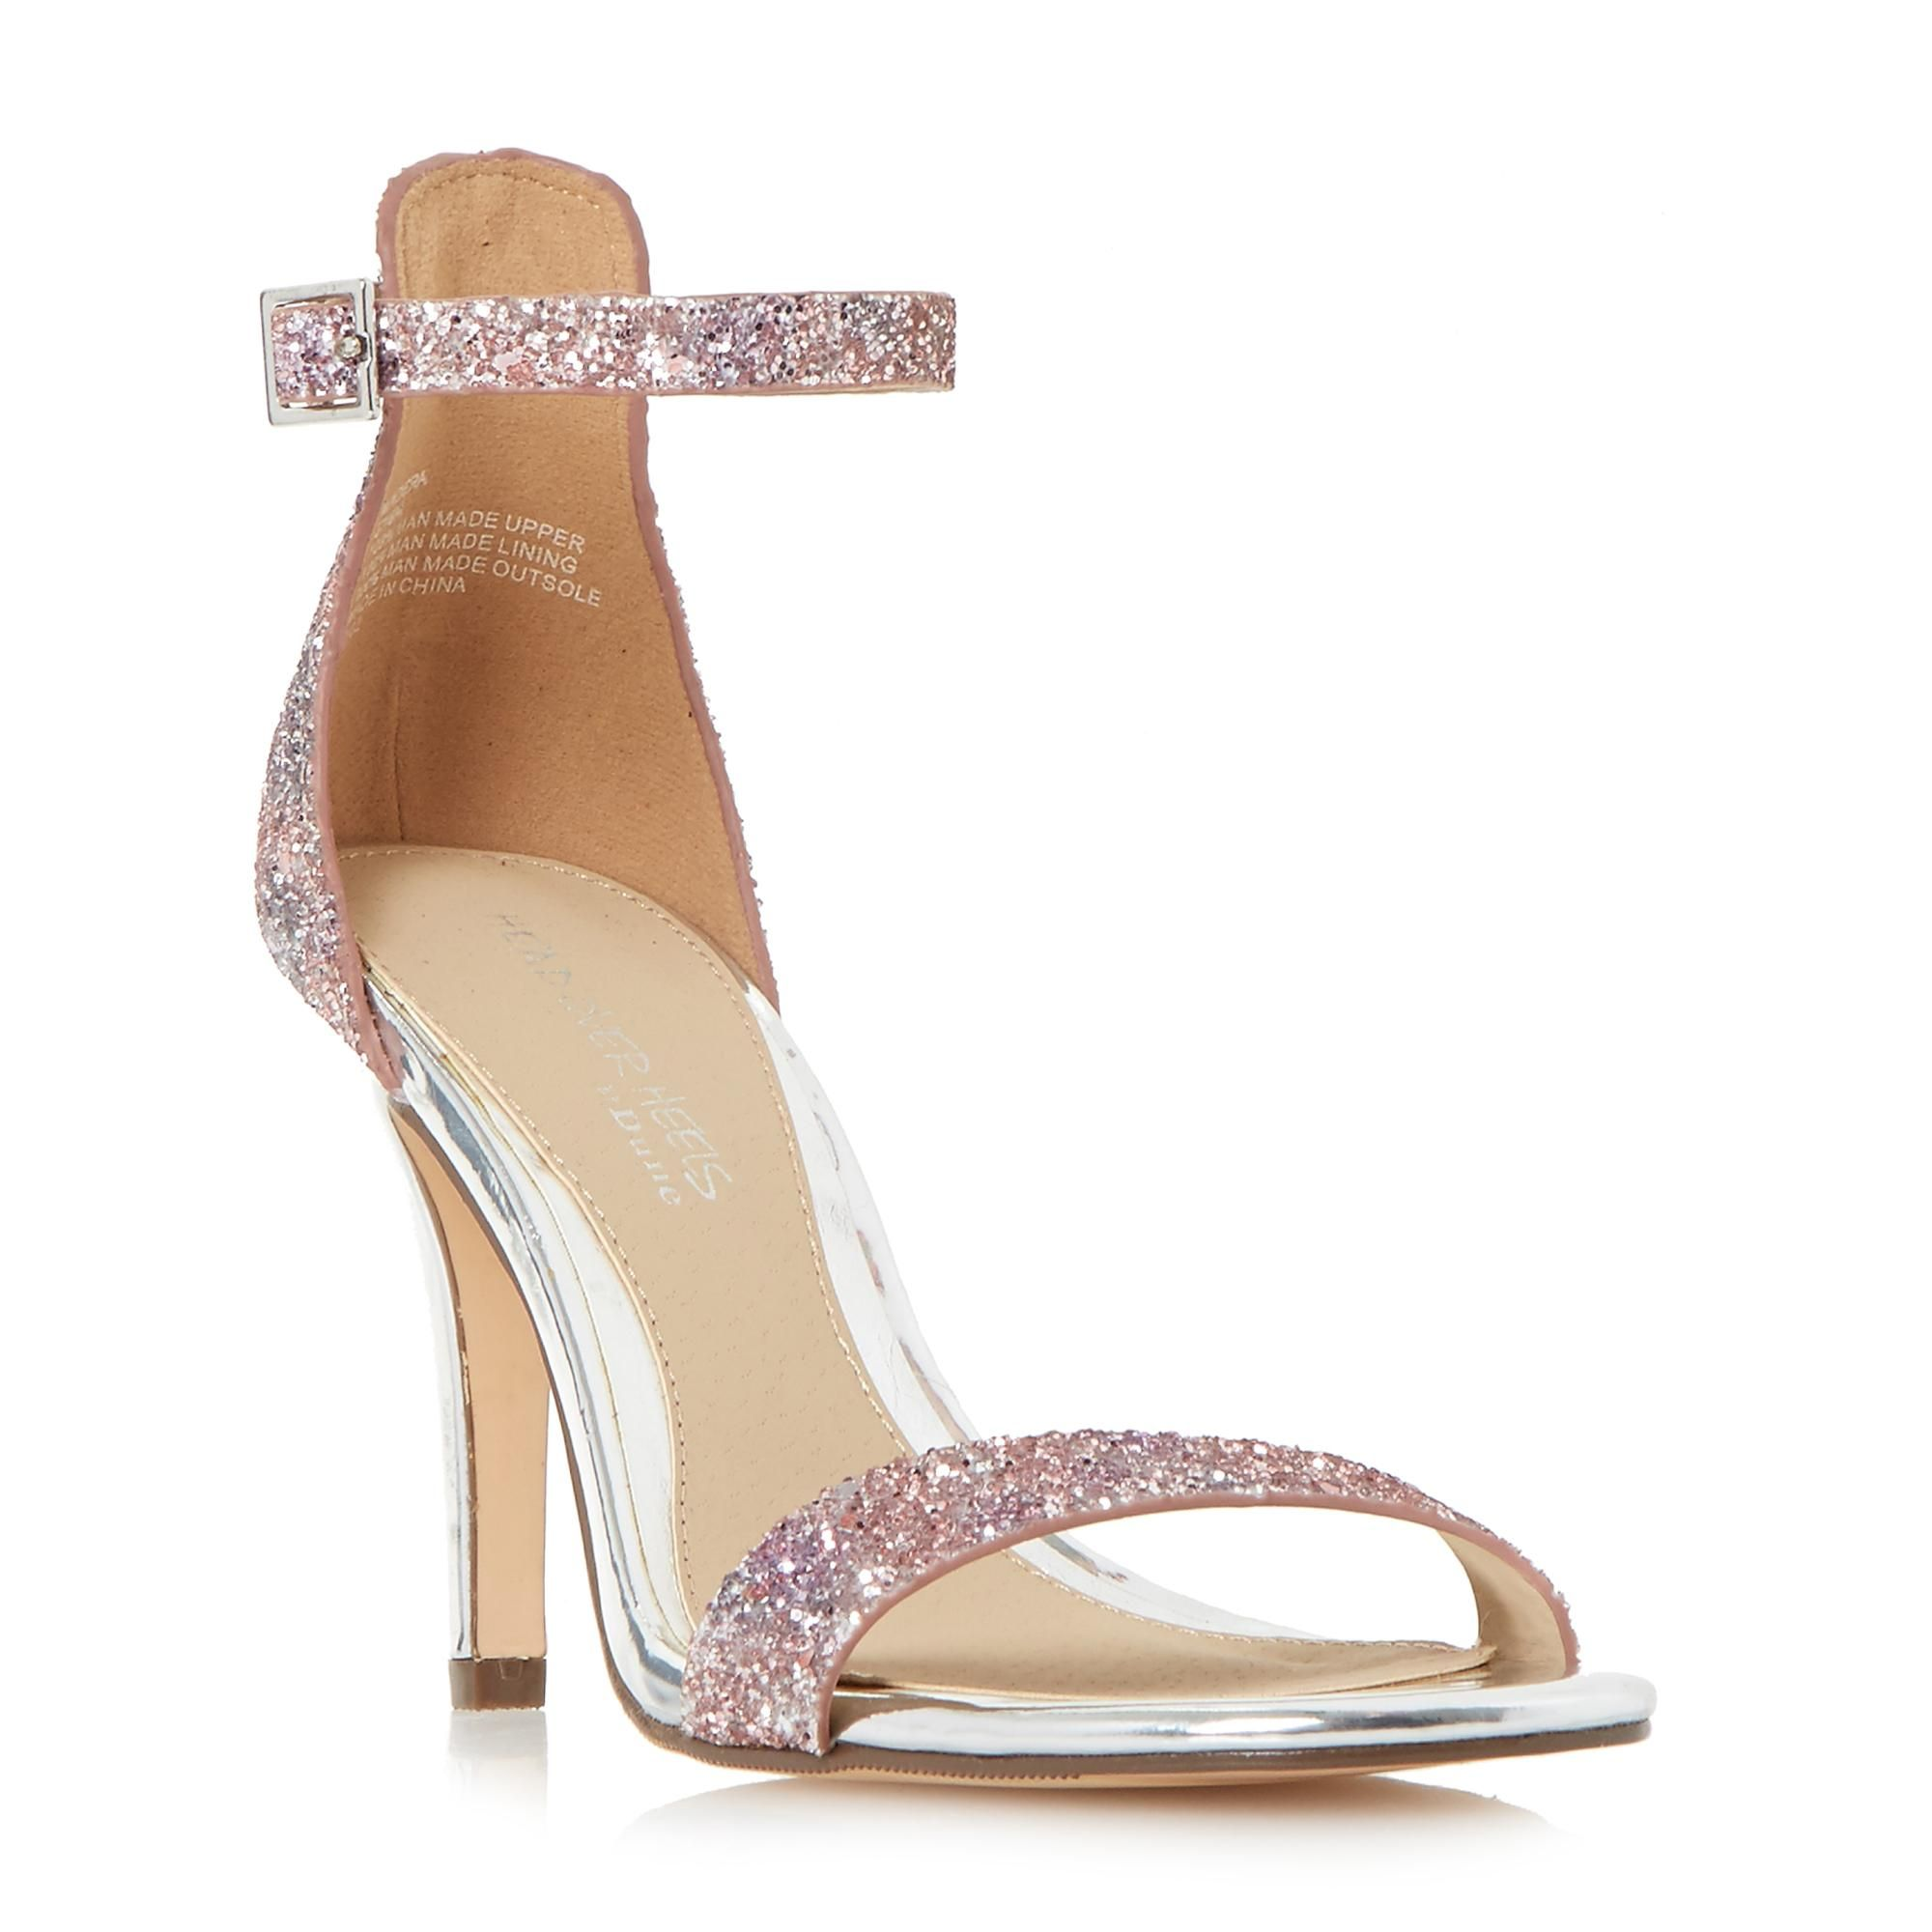 83452b360a HEAD OVER HEELS MADERA - Two Part High Heeled Stiletto Sandal - multi |  Dune Shoes Online